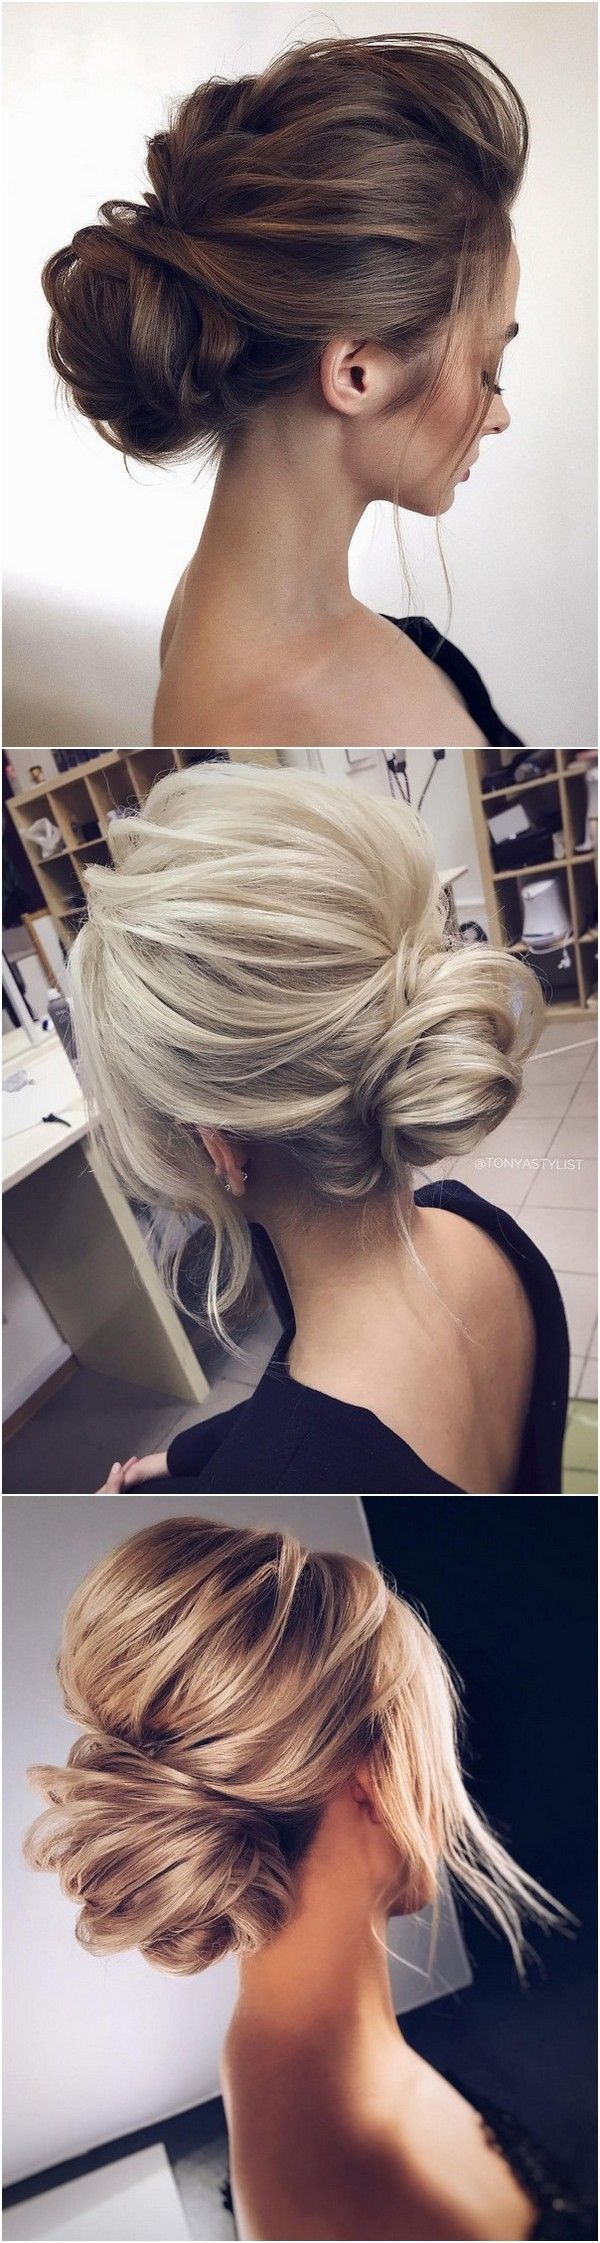 12 So Fairly Updo Wedding ceremony Hairstyles from TonyaPushkareva – Web page 2 of two